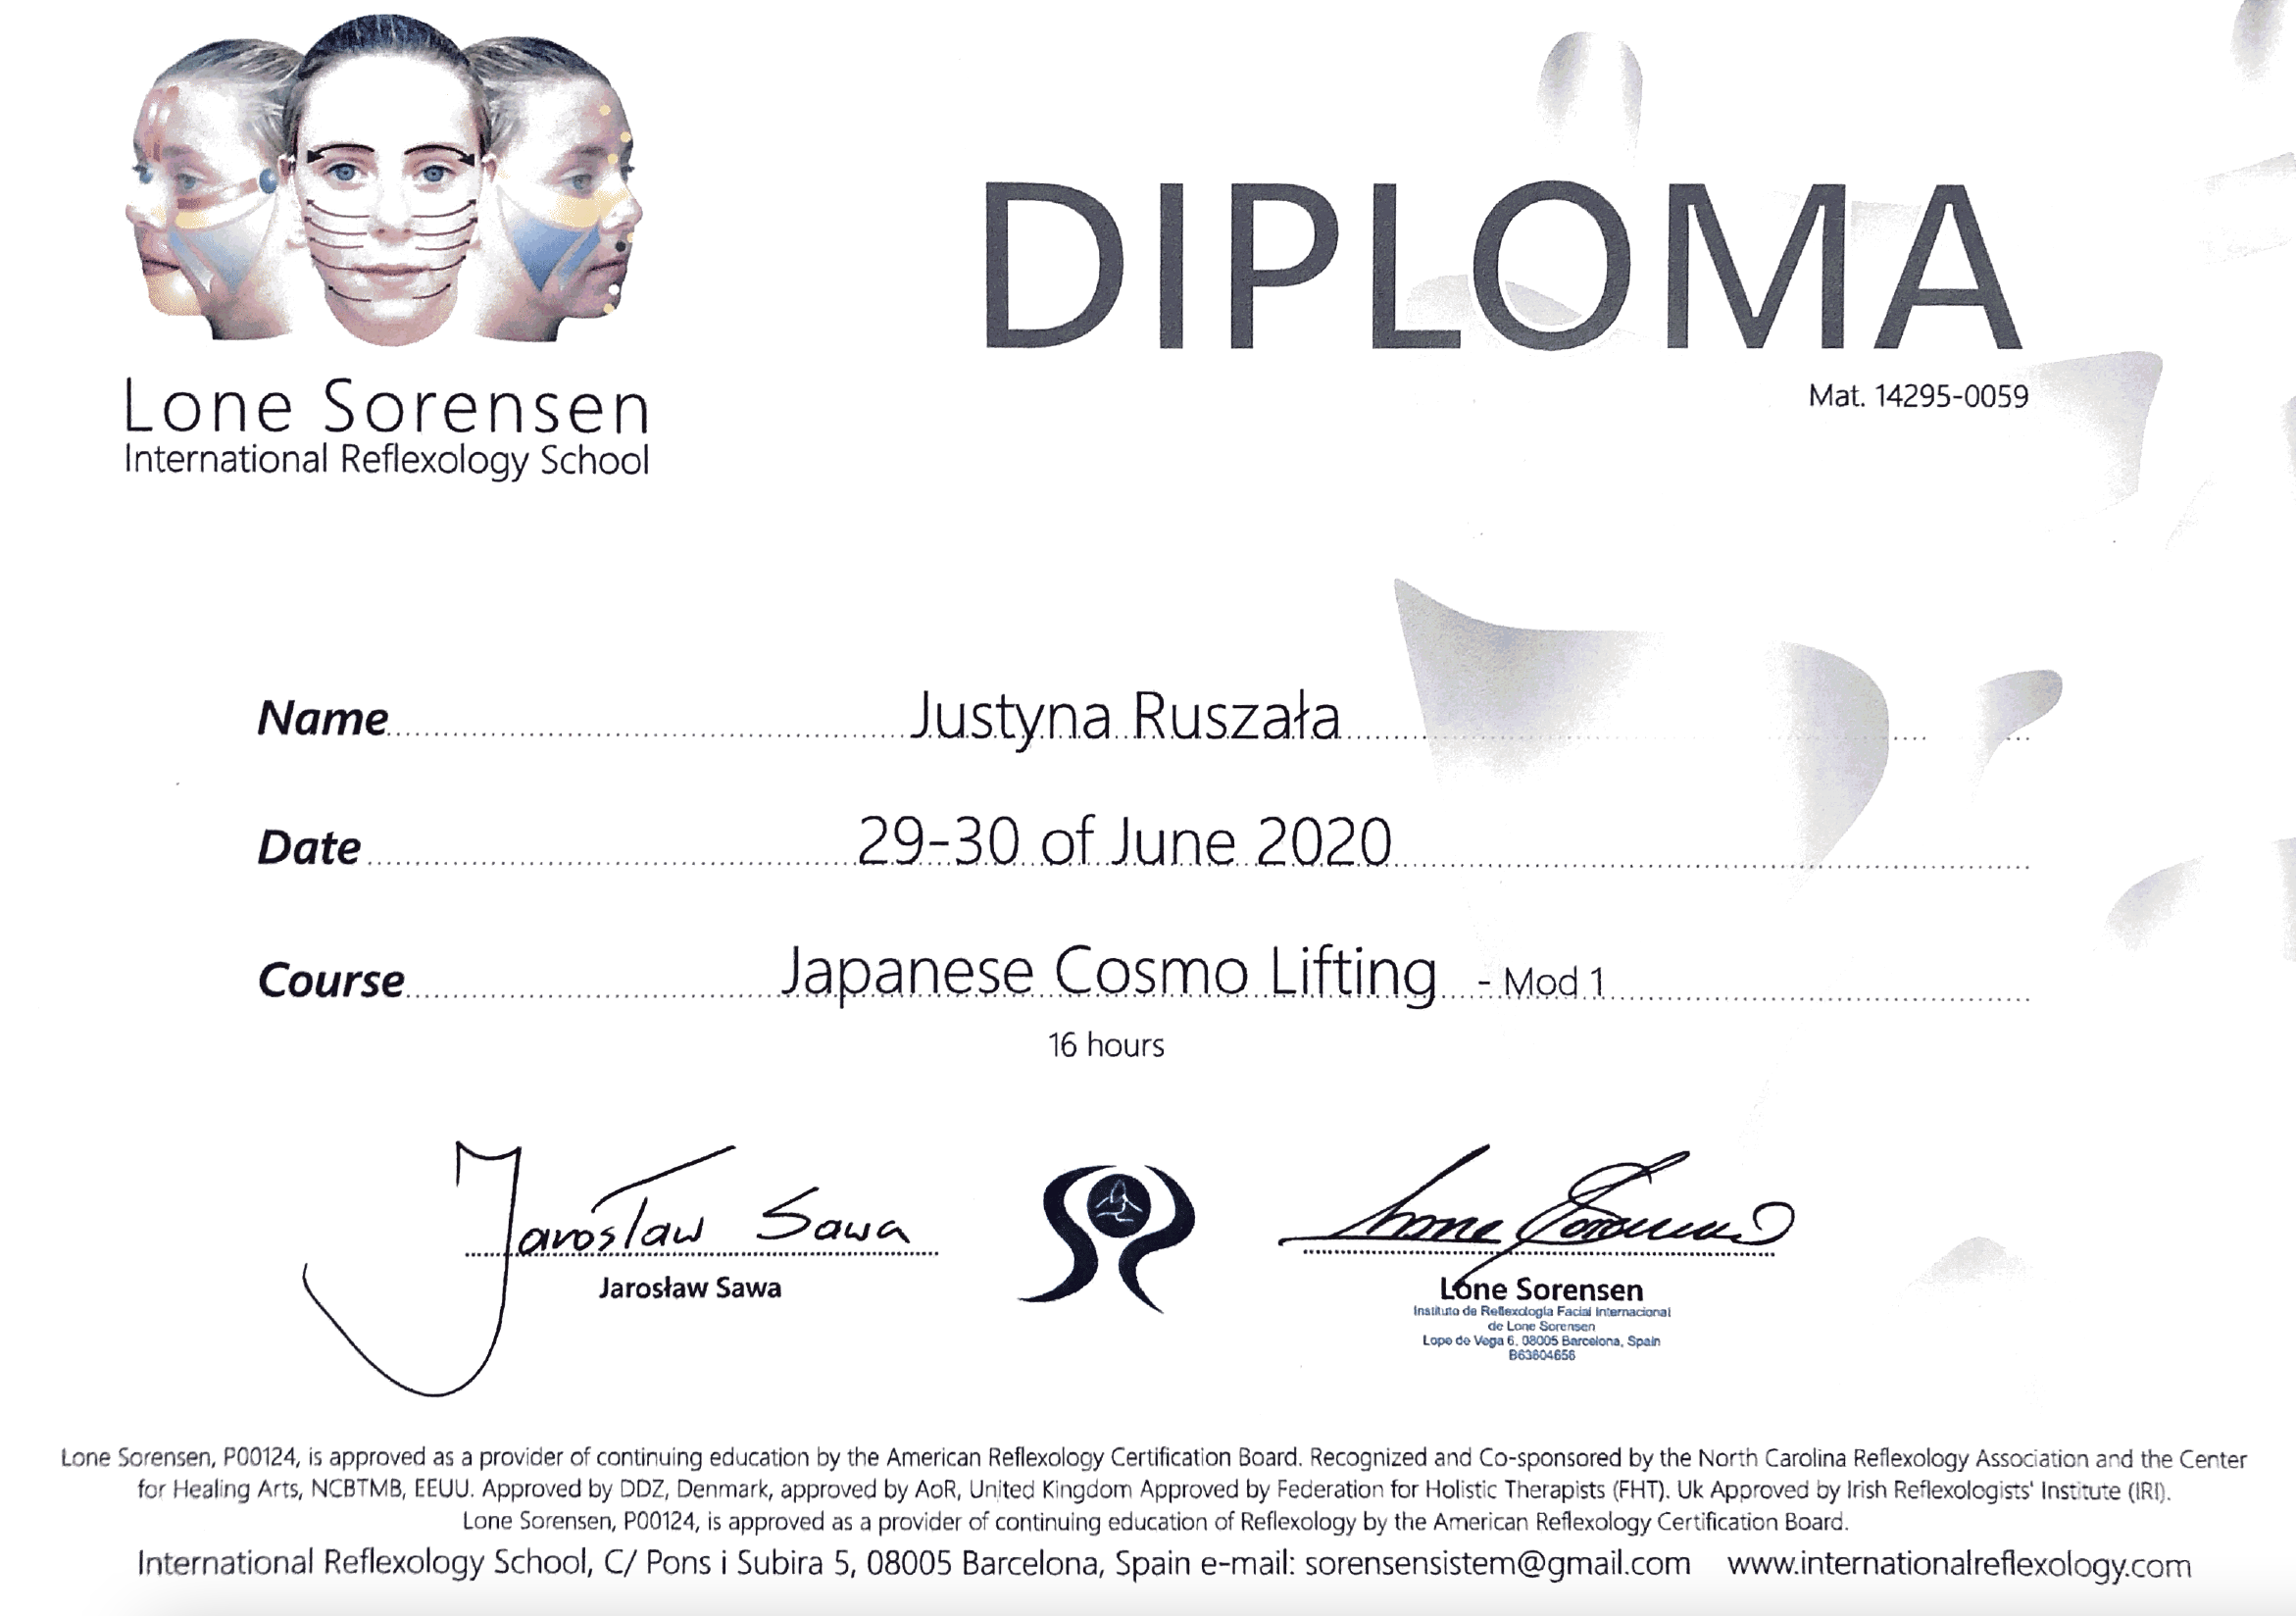 Japanese Cosmo Lifting